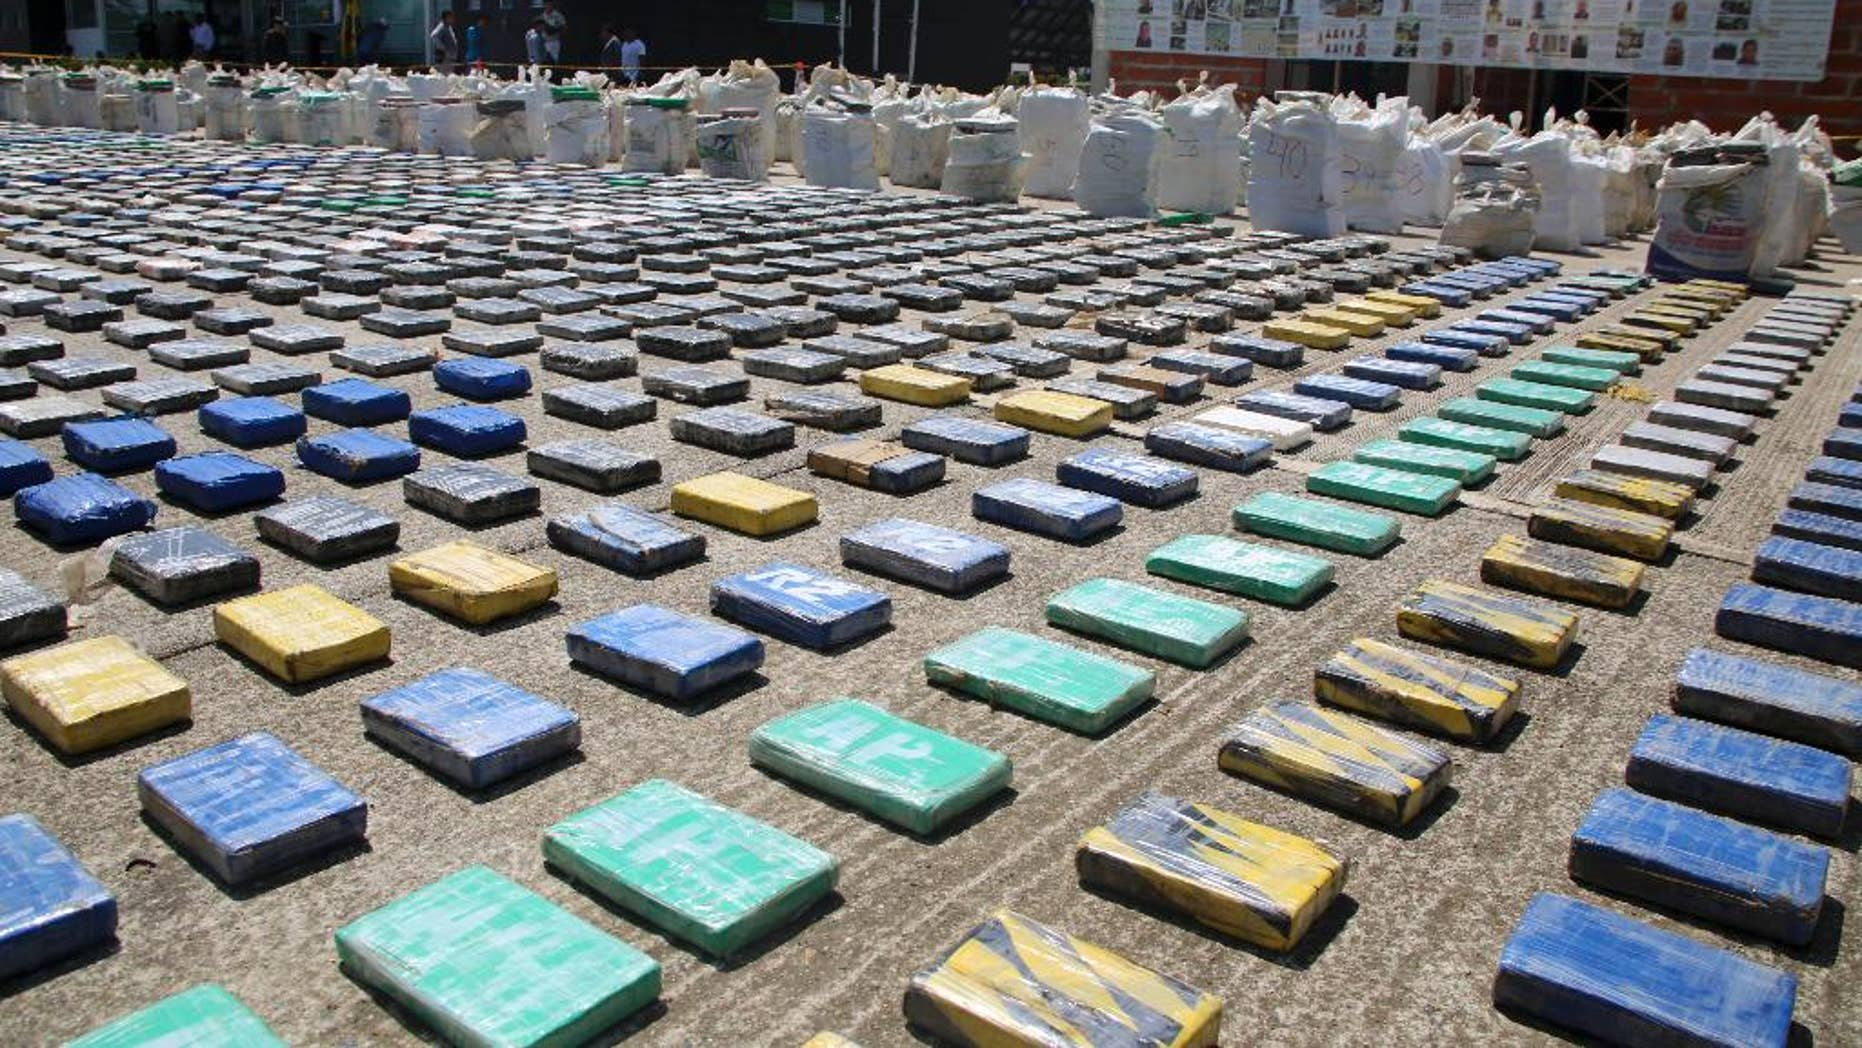 This photo released by Colombia's National Police shows packages of cocaine on display in Necocli, in the northwestern state of Antioquia, Colombia, Sunday, May 15, 2016. The National Police agency said commandos backed by helicopters seized about eight tons of cocaine on a banana plantation belonging to a gang known as the Clan Usuaga and was apparently destined for the Caribbean and then to the United States. Authorities say its the biggest cocaine seizure in Colombia's history. (Colombia National Police via AP)